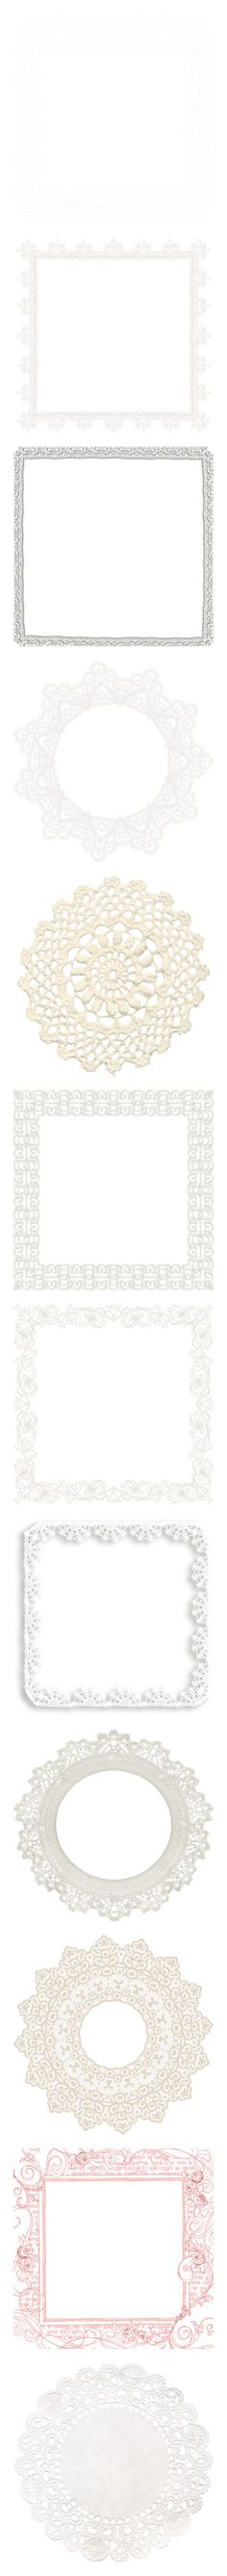 """""""LACE FRAMES"""" by swan-lady ❤ liked on Polyvore featuring effects, frame, backgrounds, psd, tubes, frames, borders, picture frame, filler and lace"""